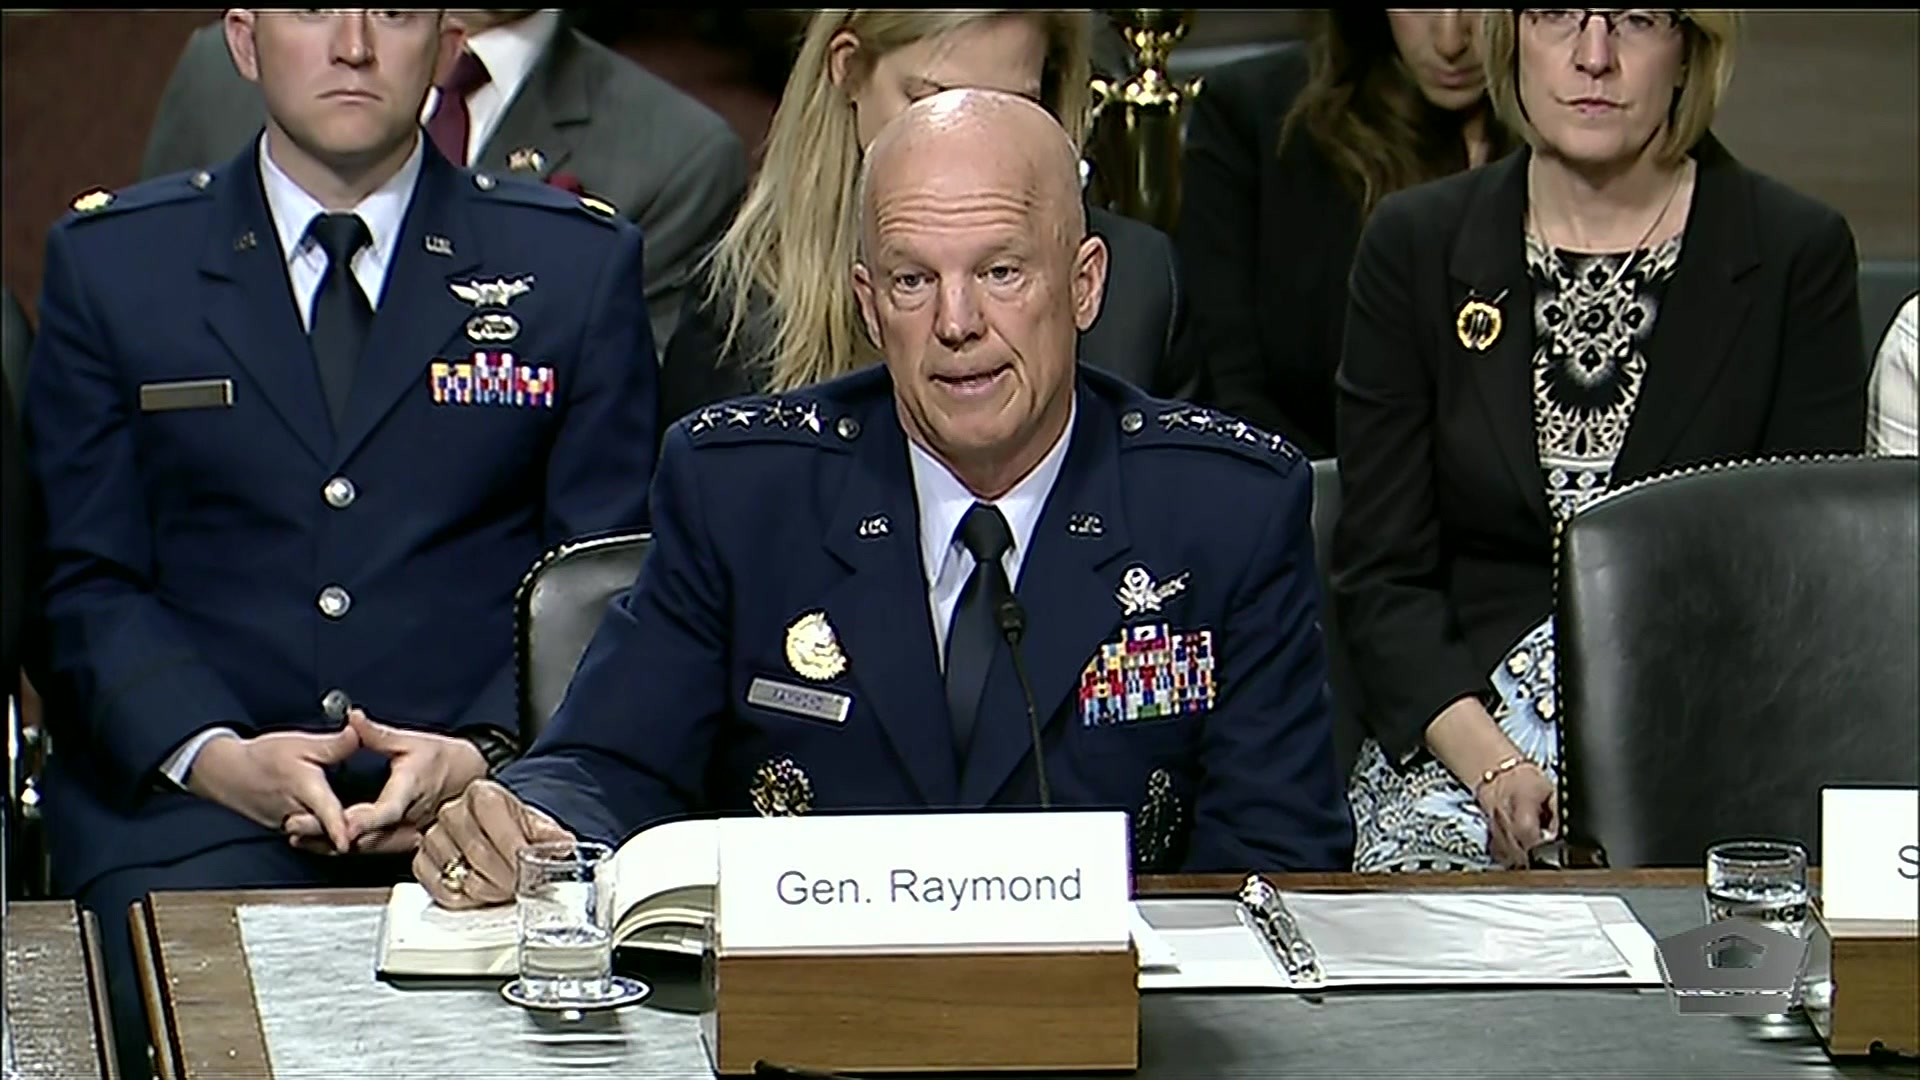 Christopher Scolese, nominated to serve as director of the National Reconnaissance Office, and Air Force Gen. John Raymond, nominated to command U.S. Space Command and Air Force Space Command, testify at a hearing of the Senate Armed Services Committee, June 4, 2019.